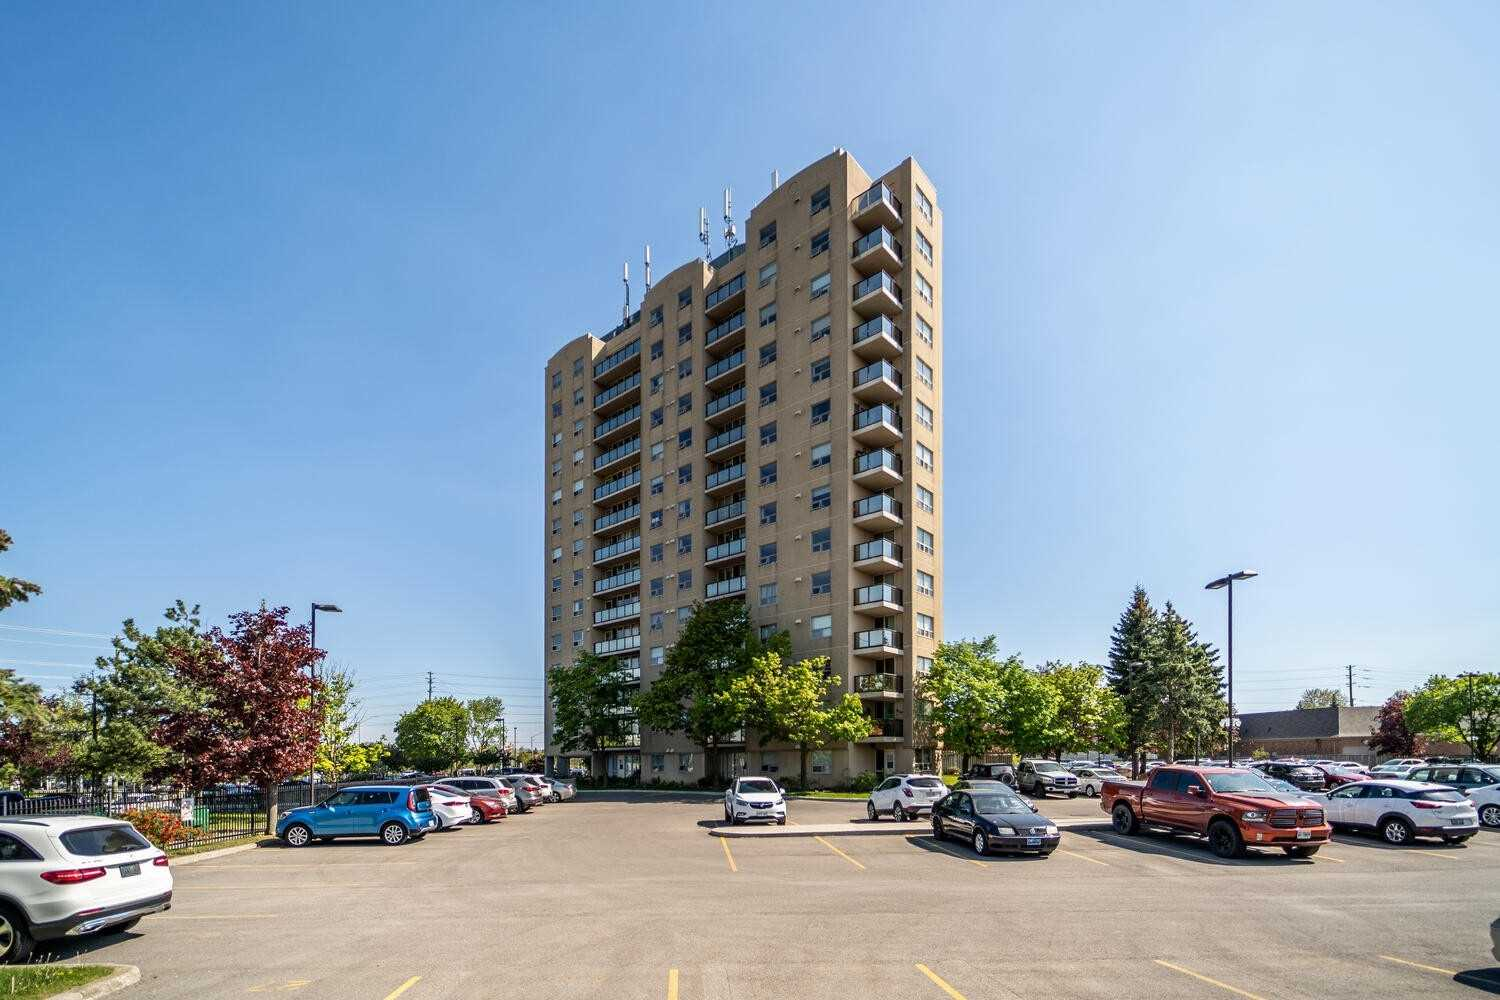 Image 12 of 25 showing inside of 2 Bedroom Condo Apt Apartment for Sale at 2 Westney Rd N Unit# 1203, Ajax L1T3H3